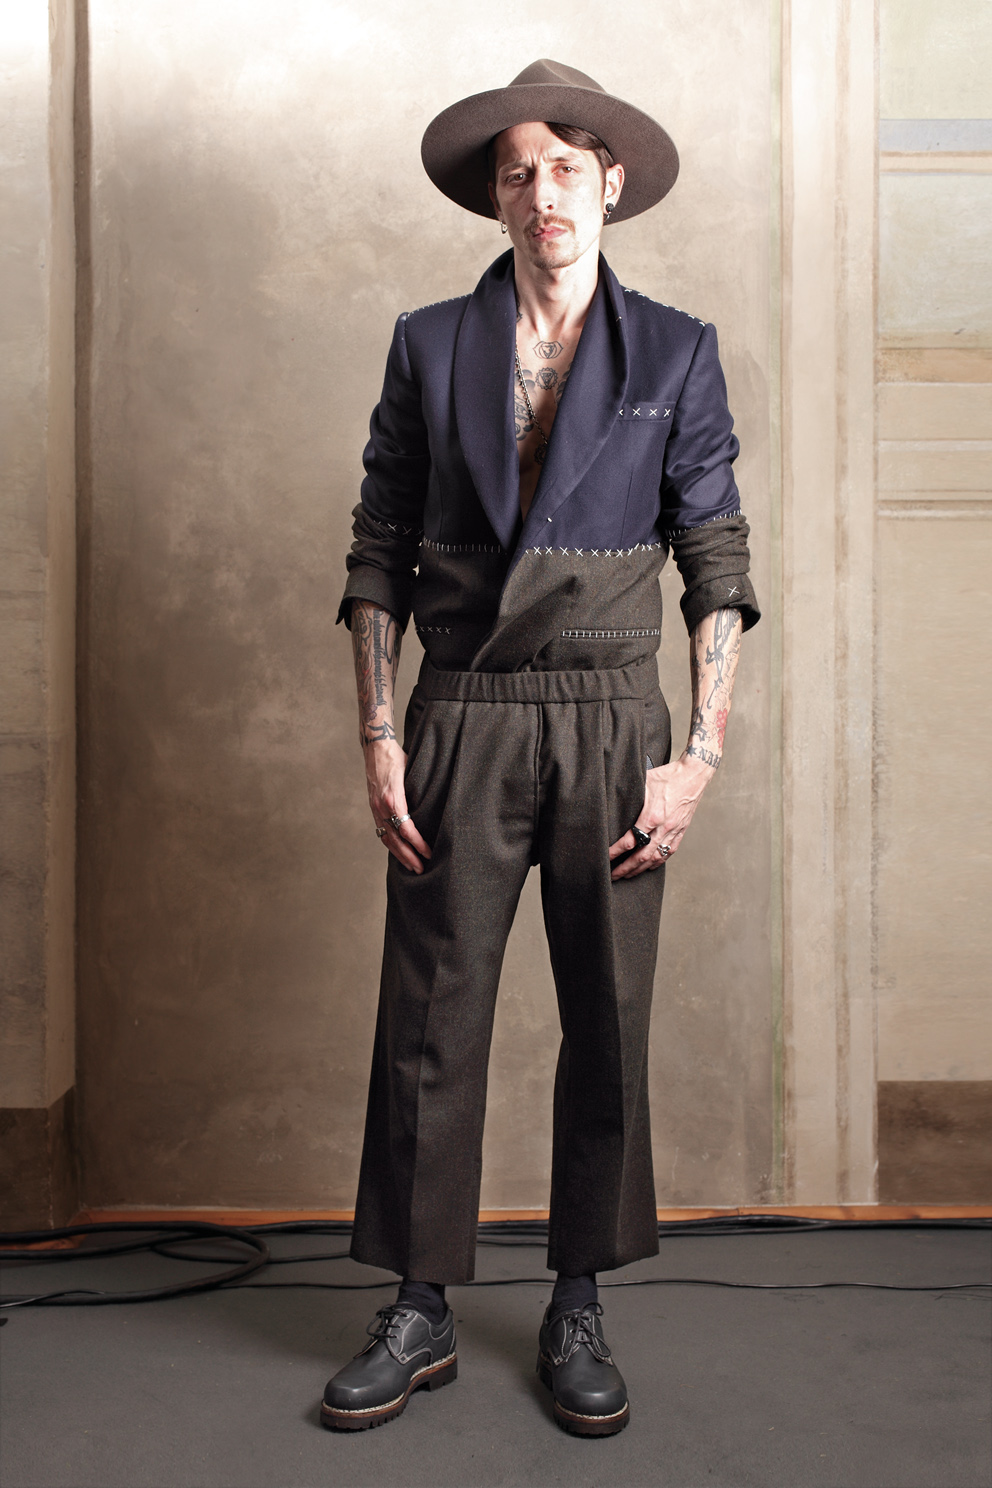 Stephan Olivier for Fabio Quaranta, Autumn/Winter 2011-2012.